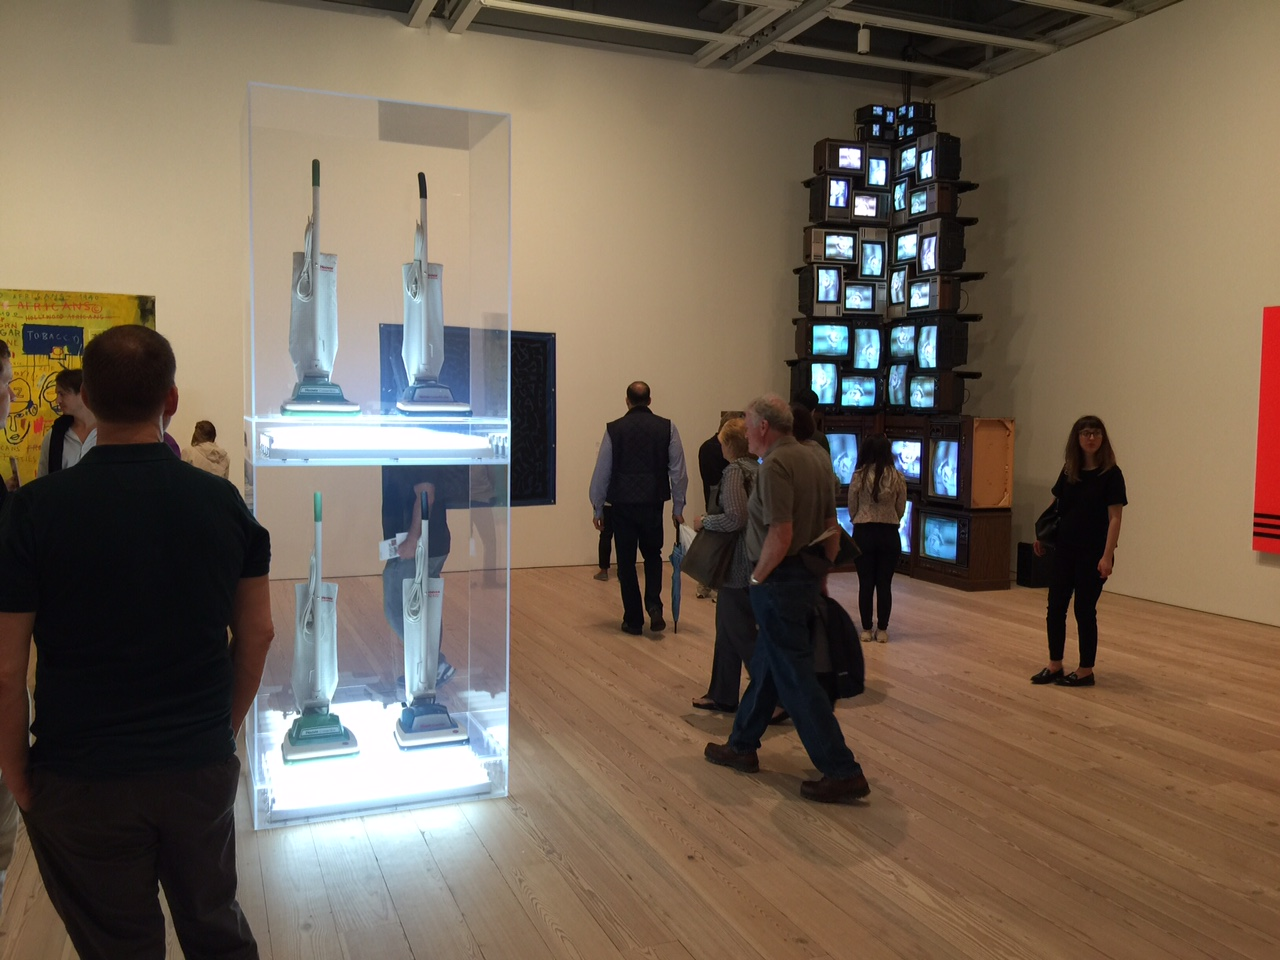 Jeff Koons at the Whitney Museum